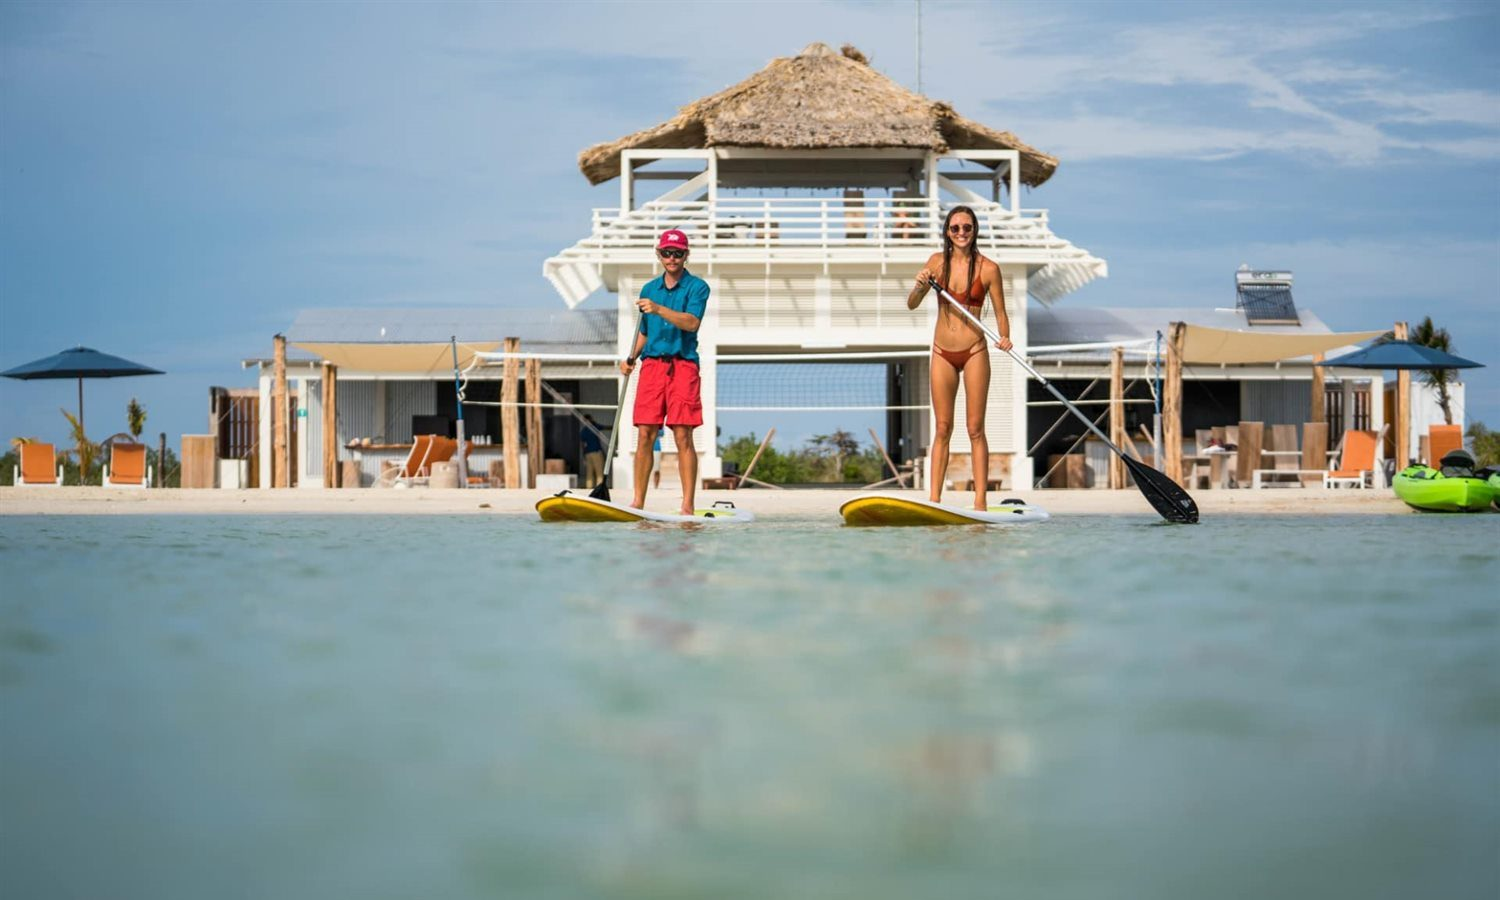 Couple paddleboarding at beach club